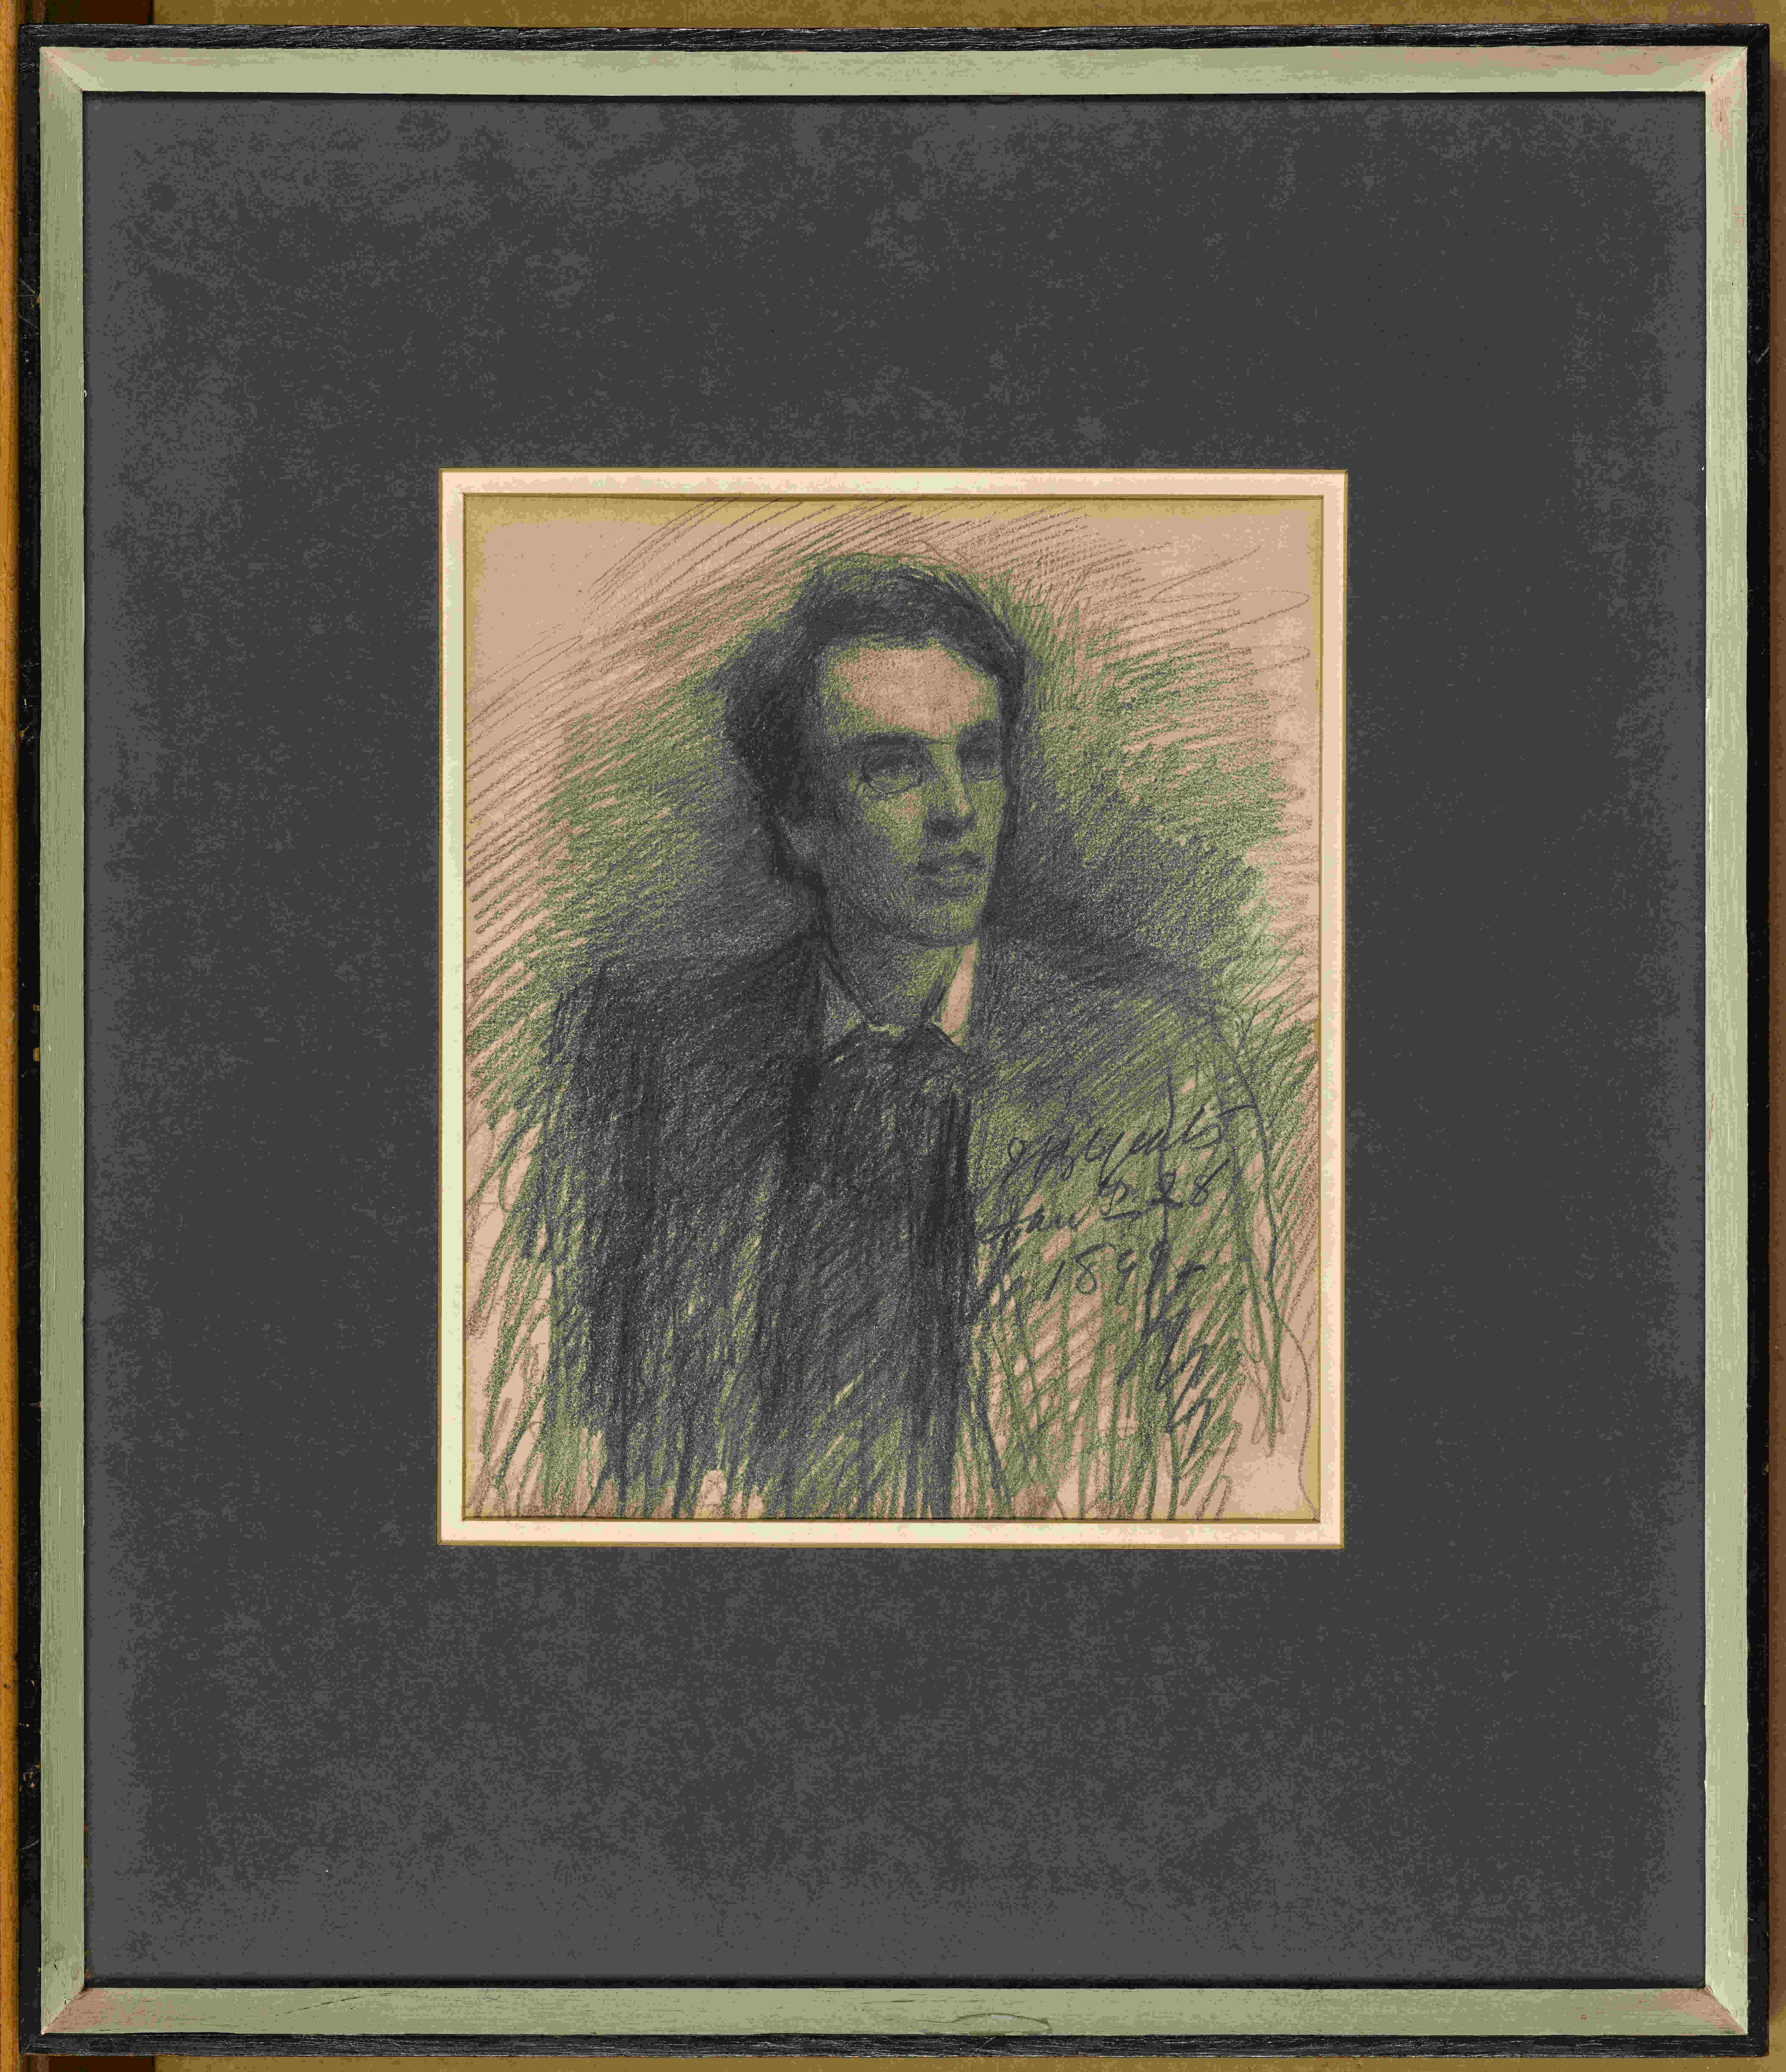 Previously unseen artefacts of writer W.B. Yeats and his artist brother Jack to go on display in Dublin this week